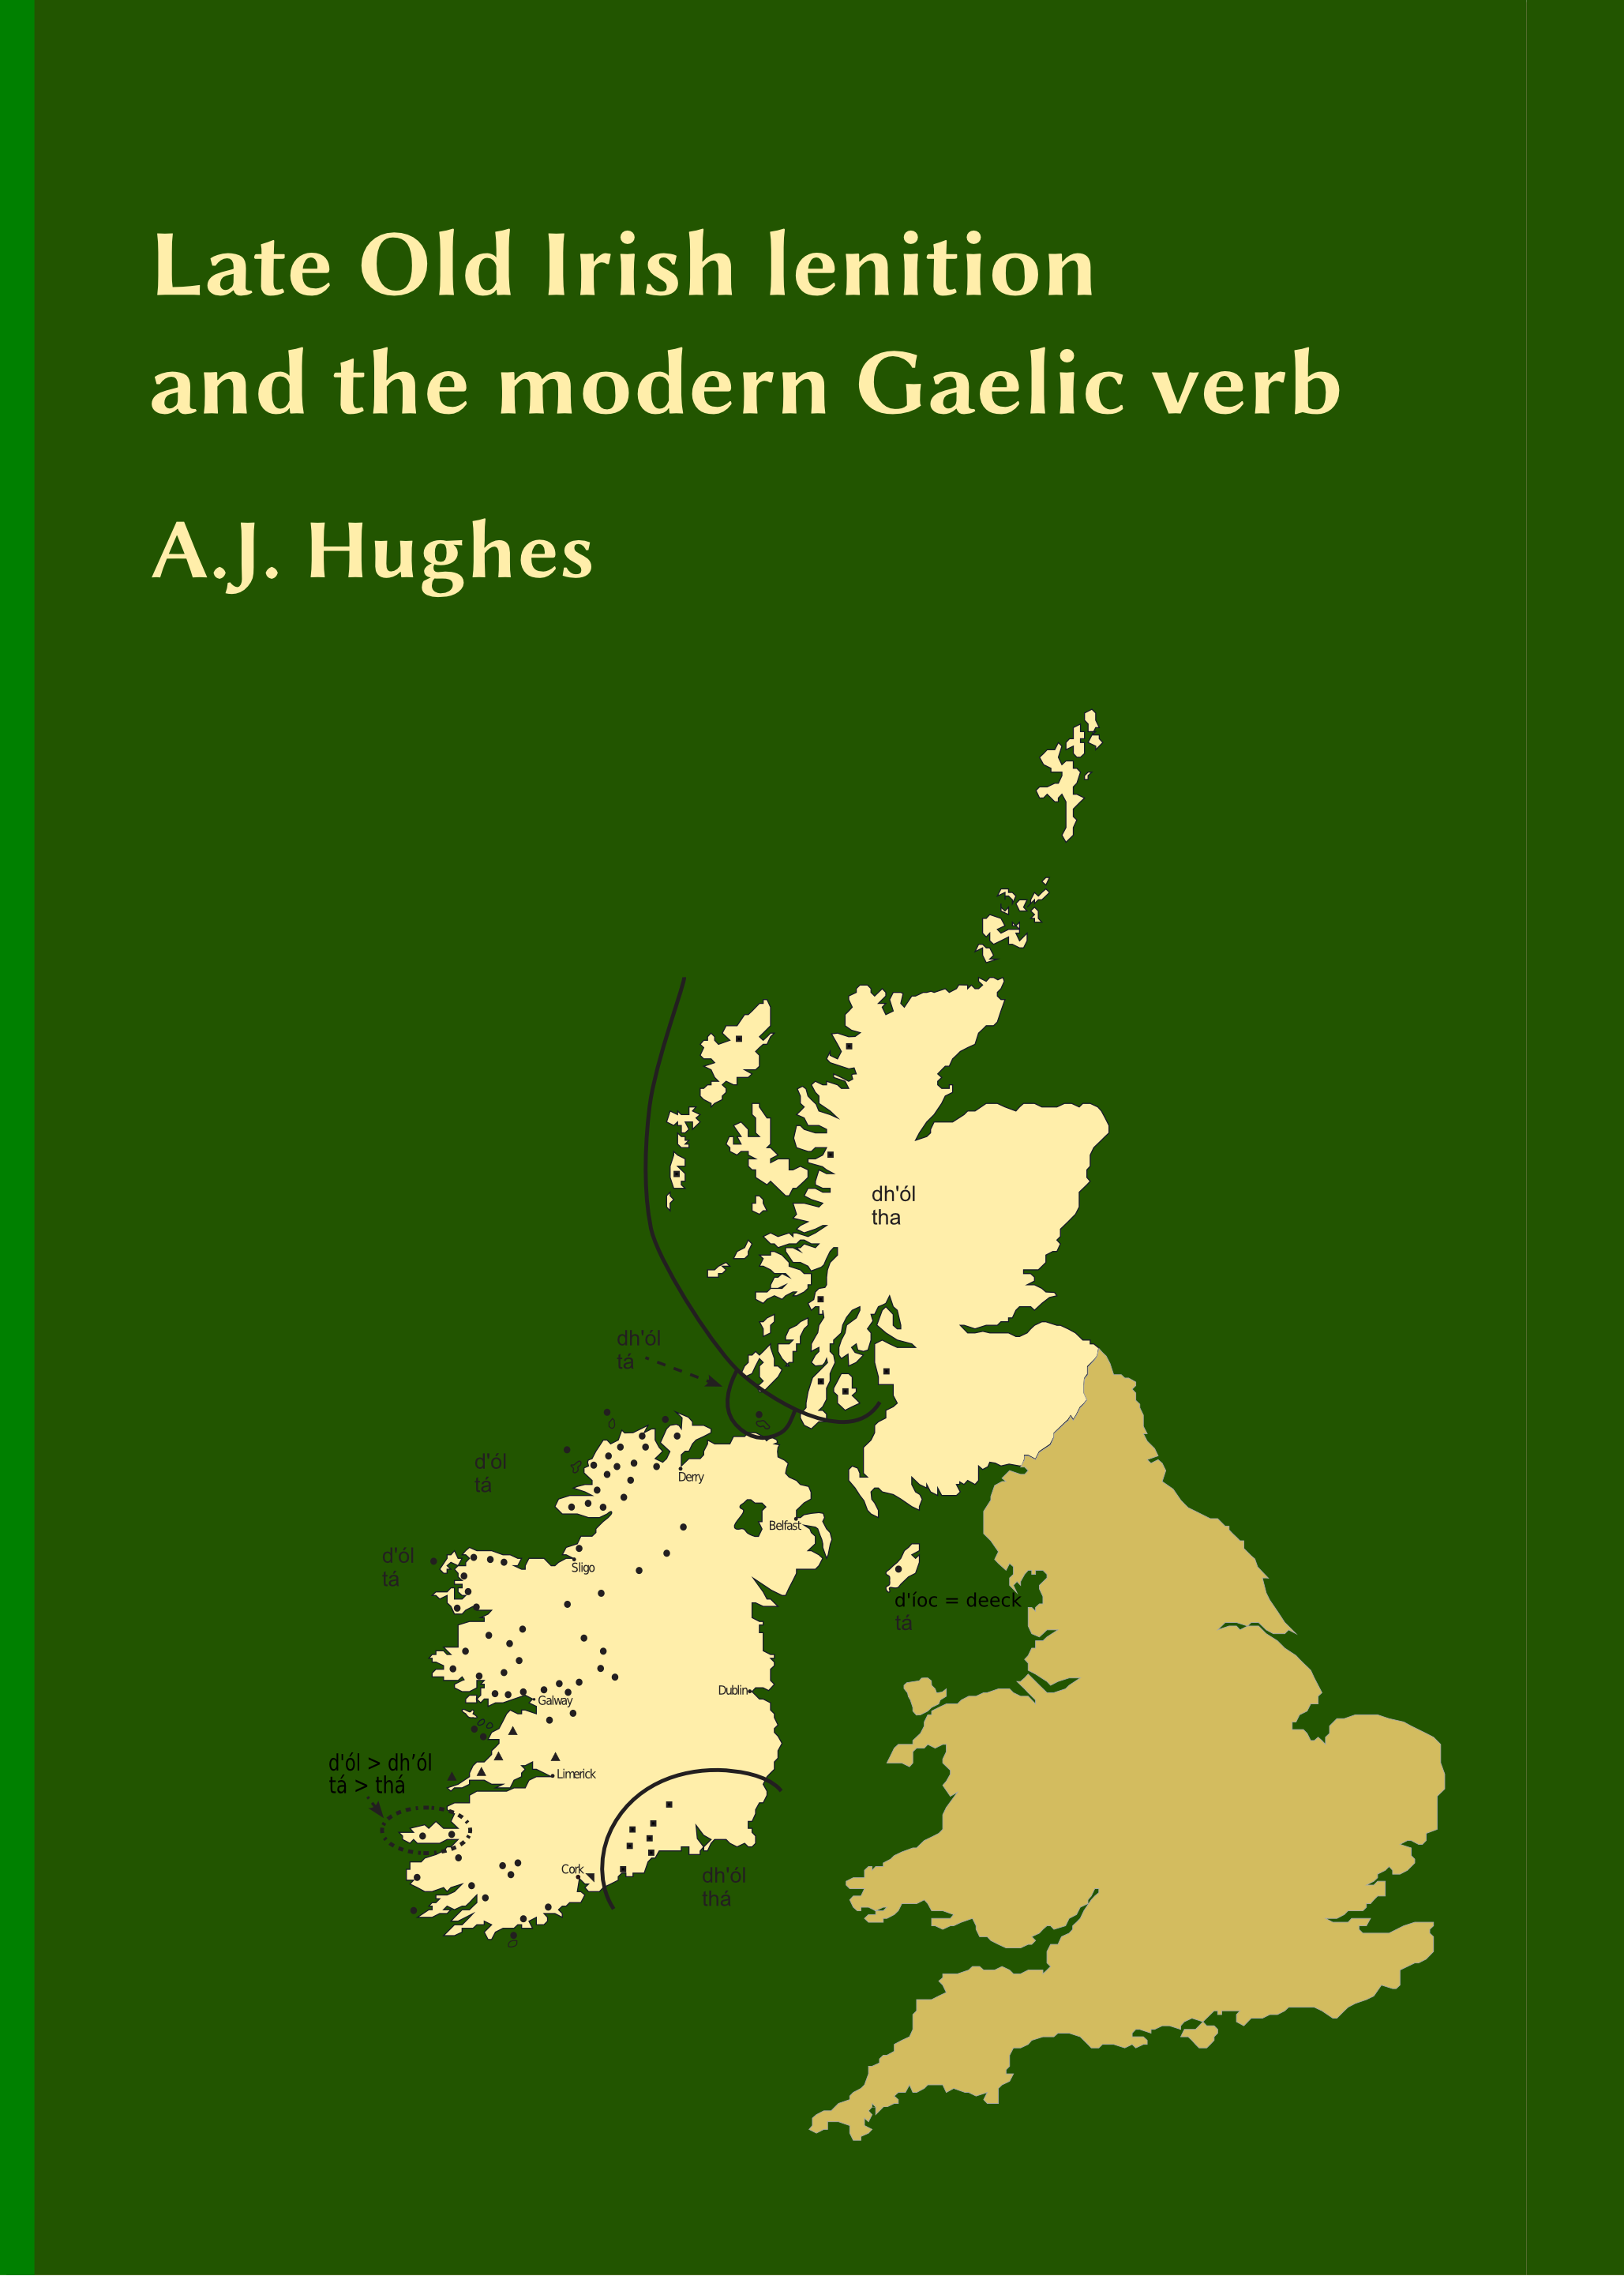 Art Hughes: Late Old Irish lenition and the modern Gaelic verb